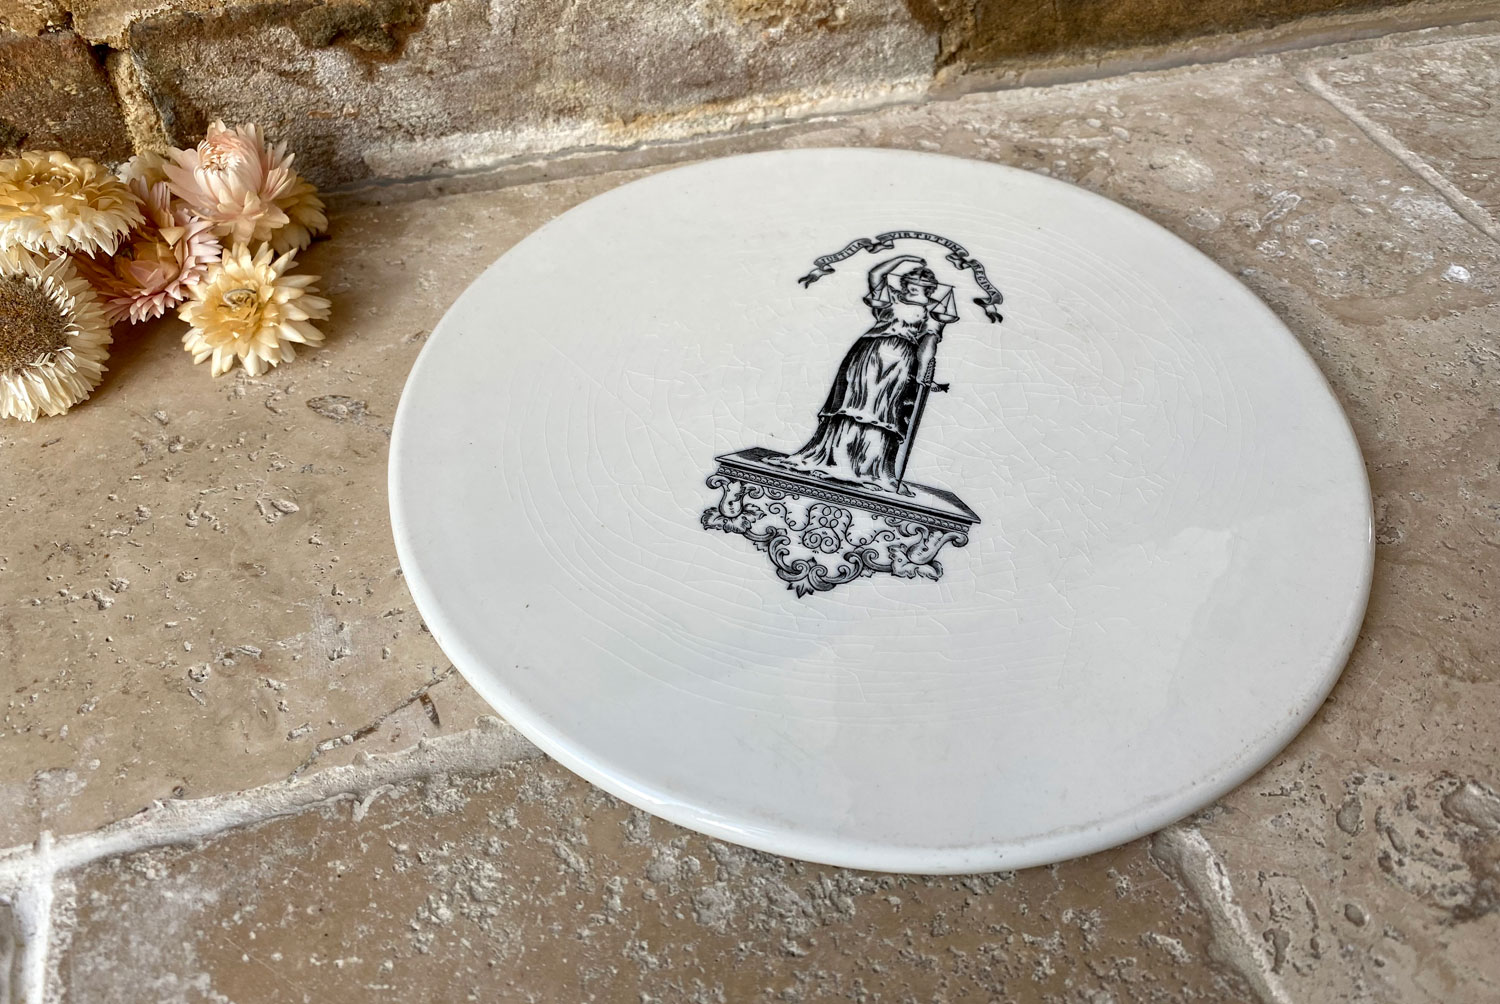 antique edwardian white ironstone advertising scale plate justitia fides black transfer print cheese slab plate